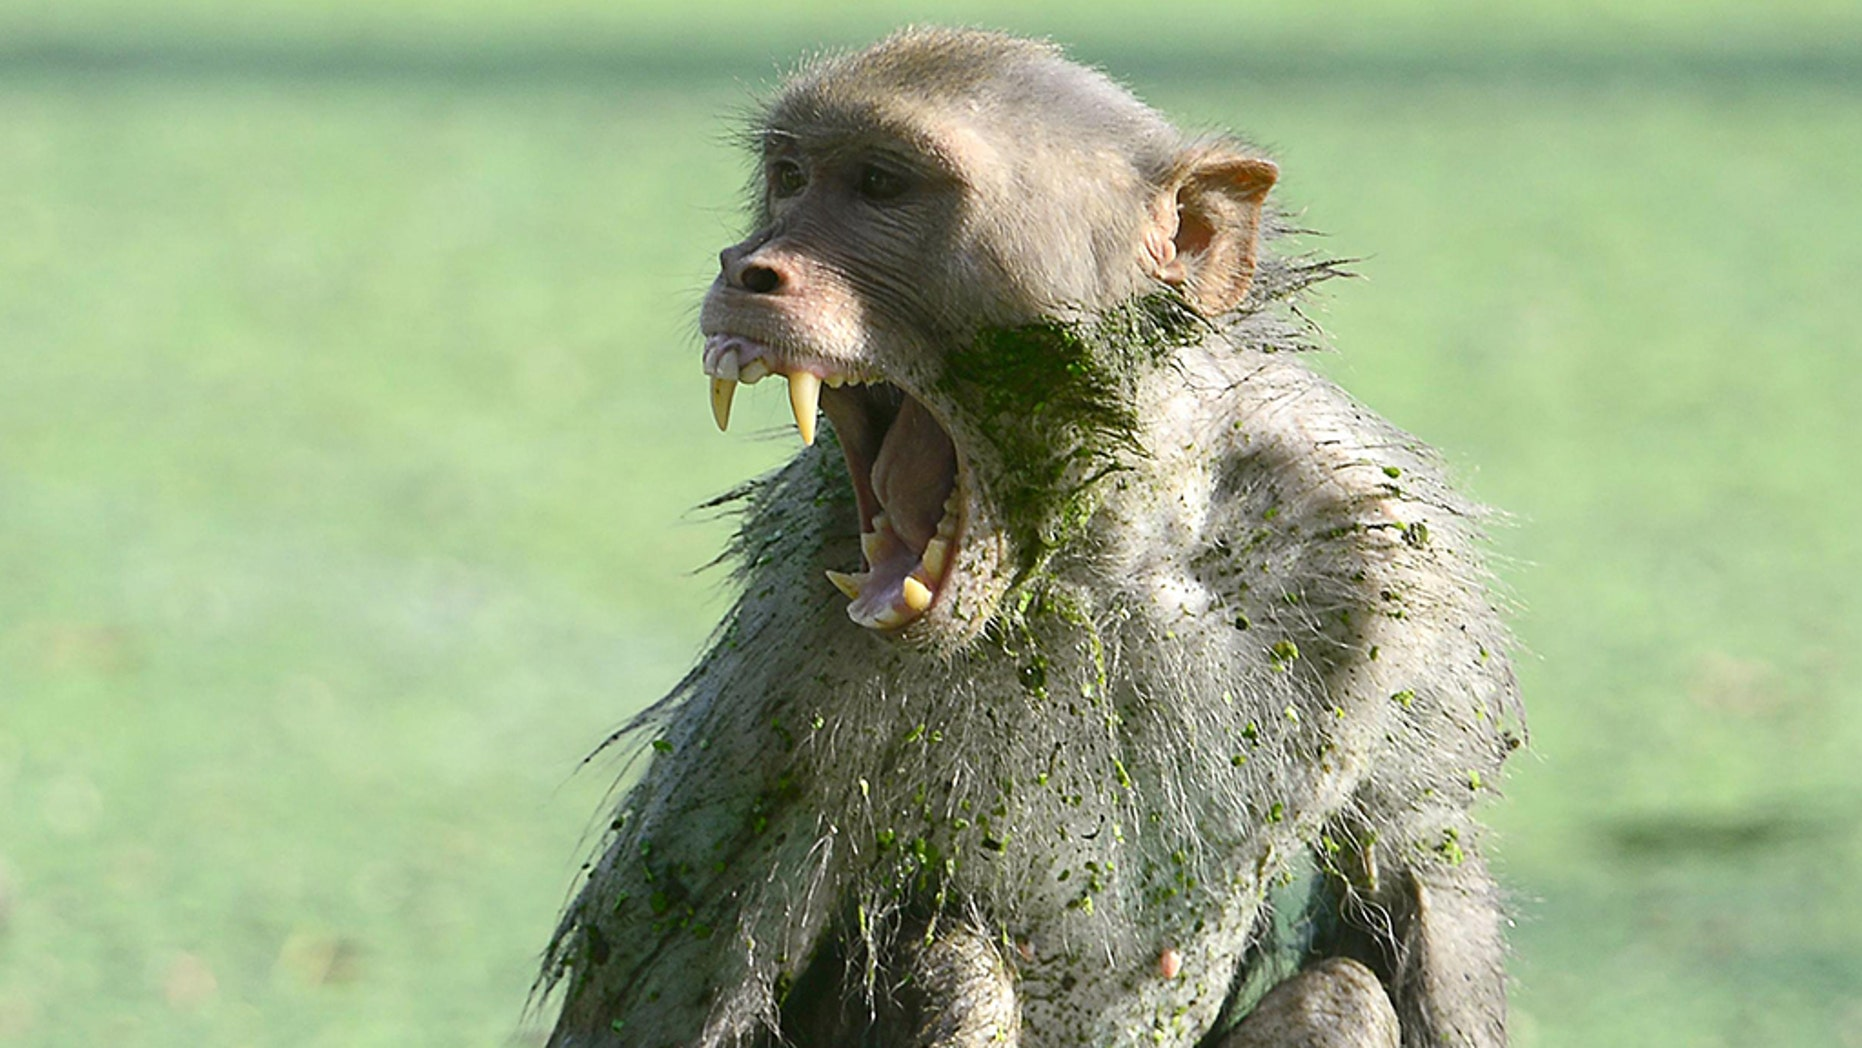 A monkey in India killed a 12-day-old baby after snatching it from his mother's arms.